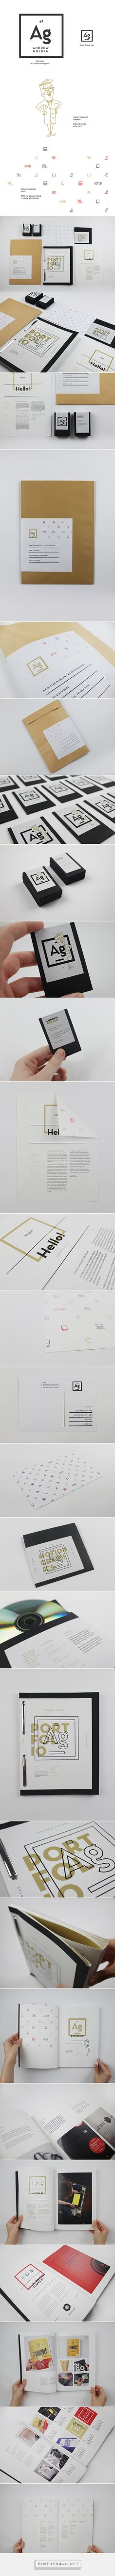 Brand &Id / Andrew Golden - Personal Branding / Portfolio, Stationery and Resume